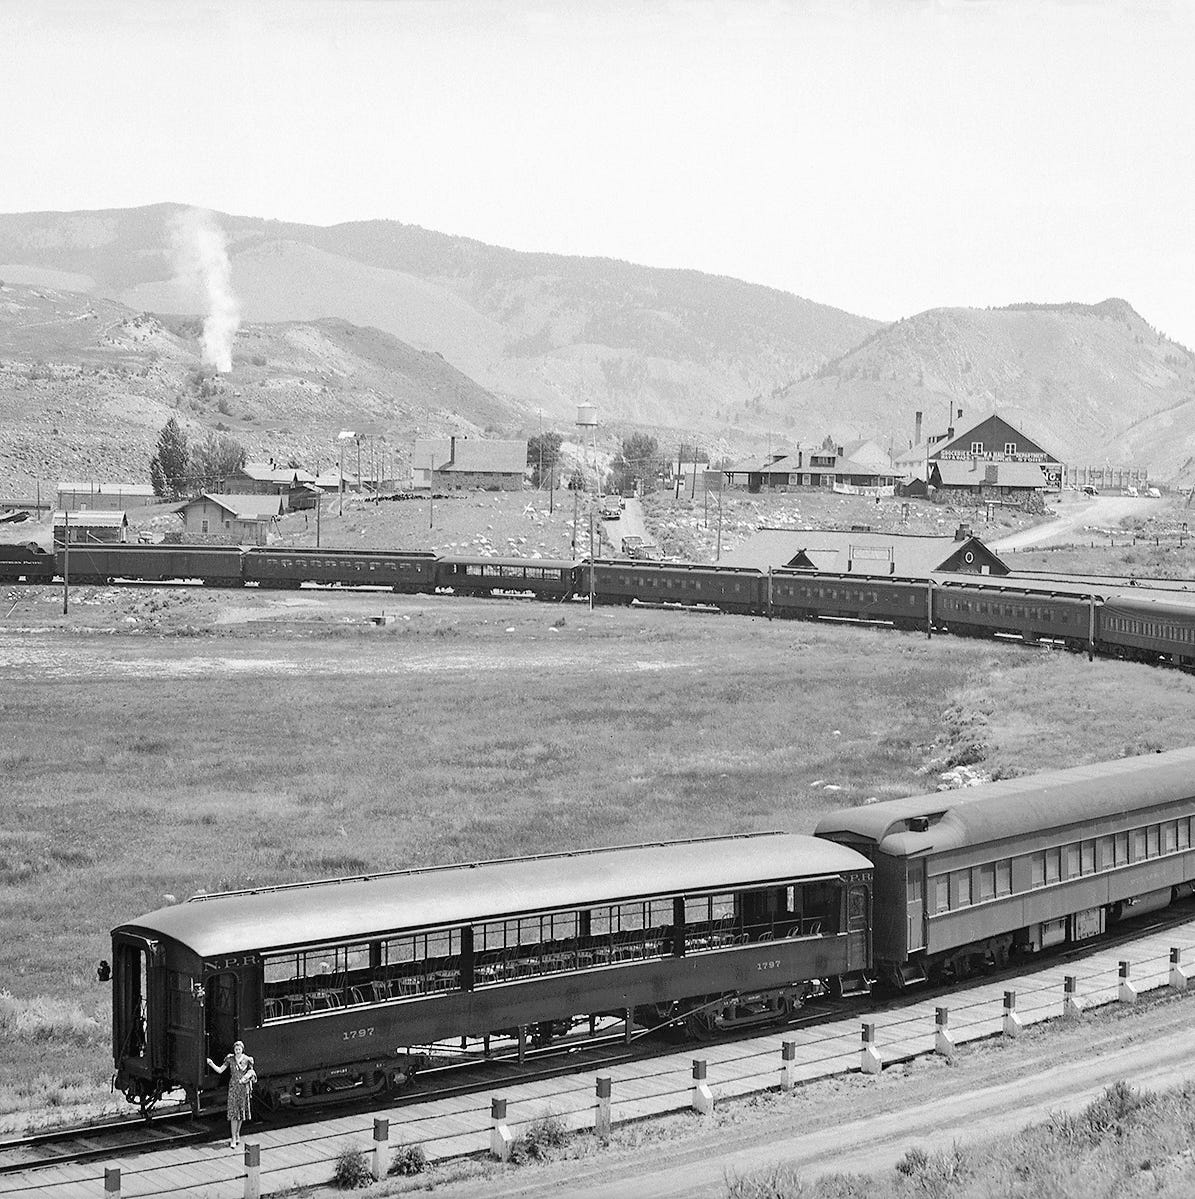 Remembering the trains that tied Montana to the world